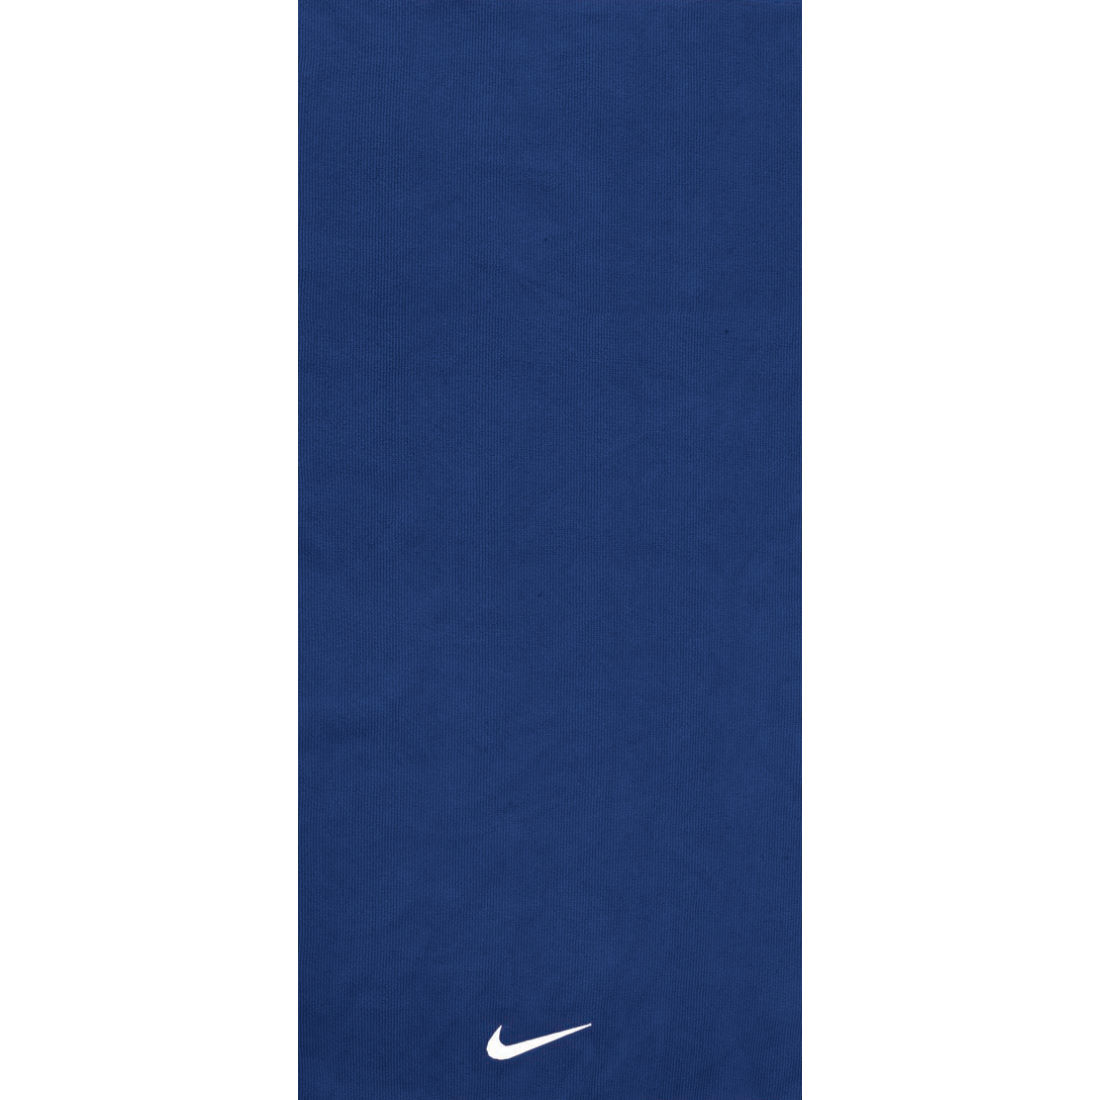 Training With Towels: Nike Training Towel SS12